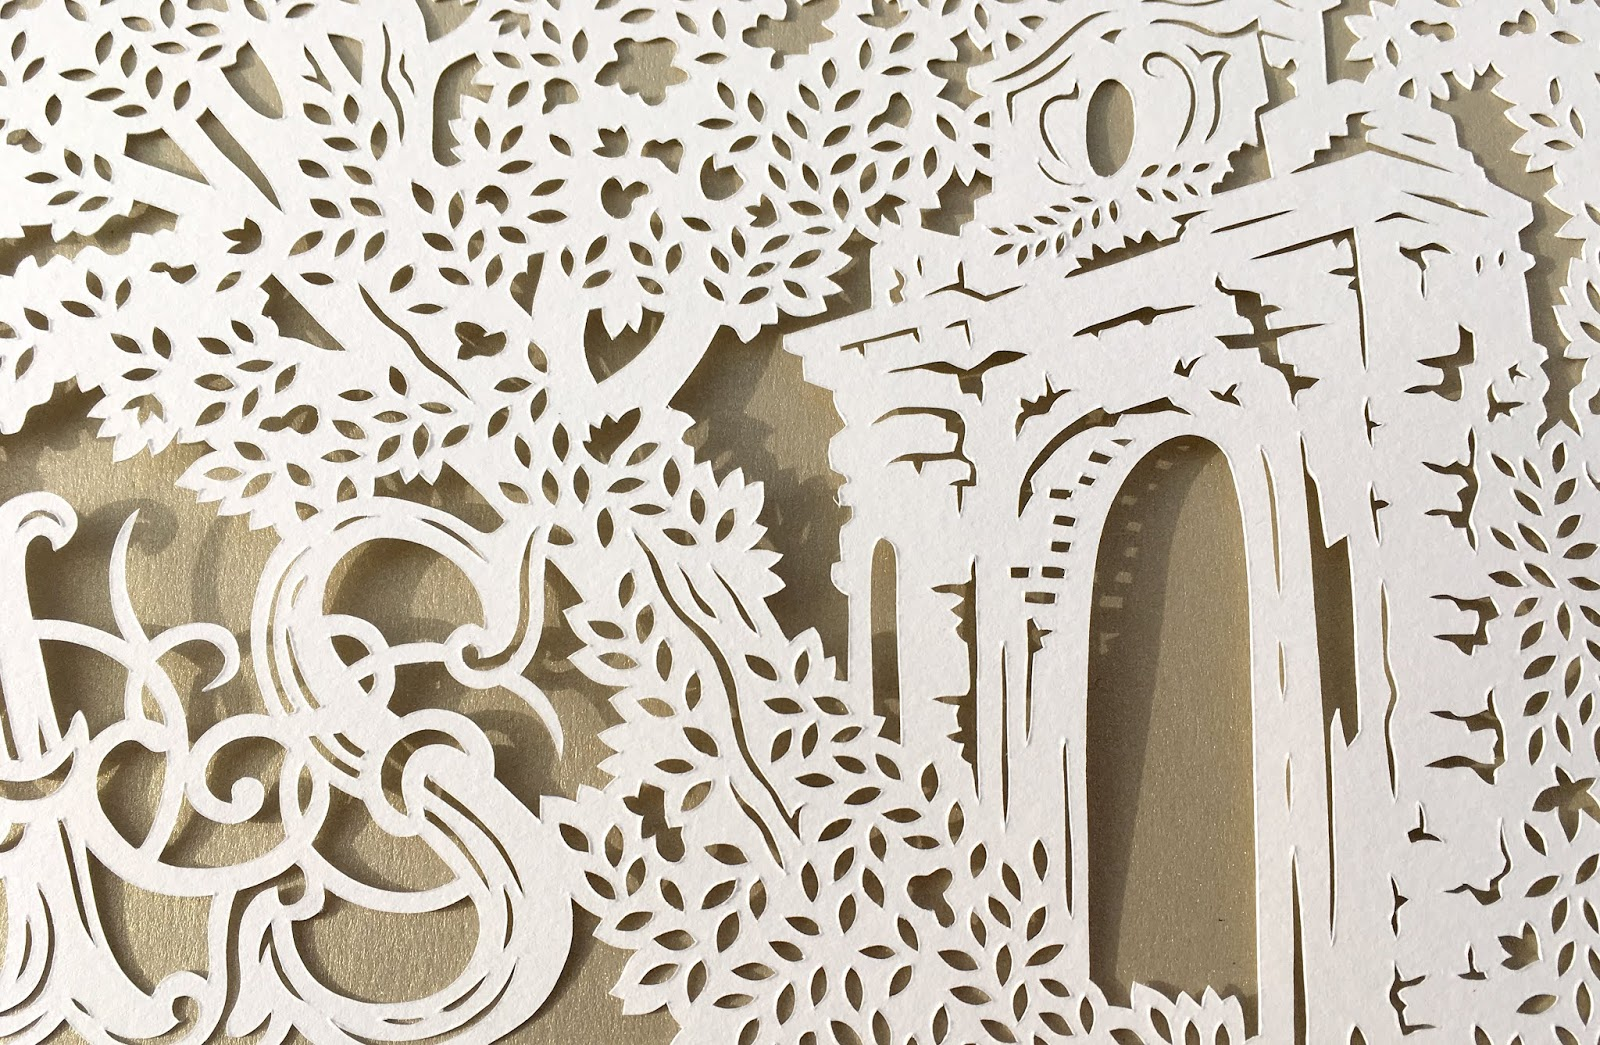 Handmade papercut wedding art; a papercut ketubah made to enshrine the couple's wedding vows to each other as a wedding gift.